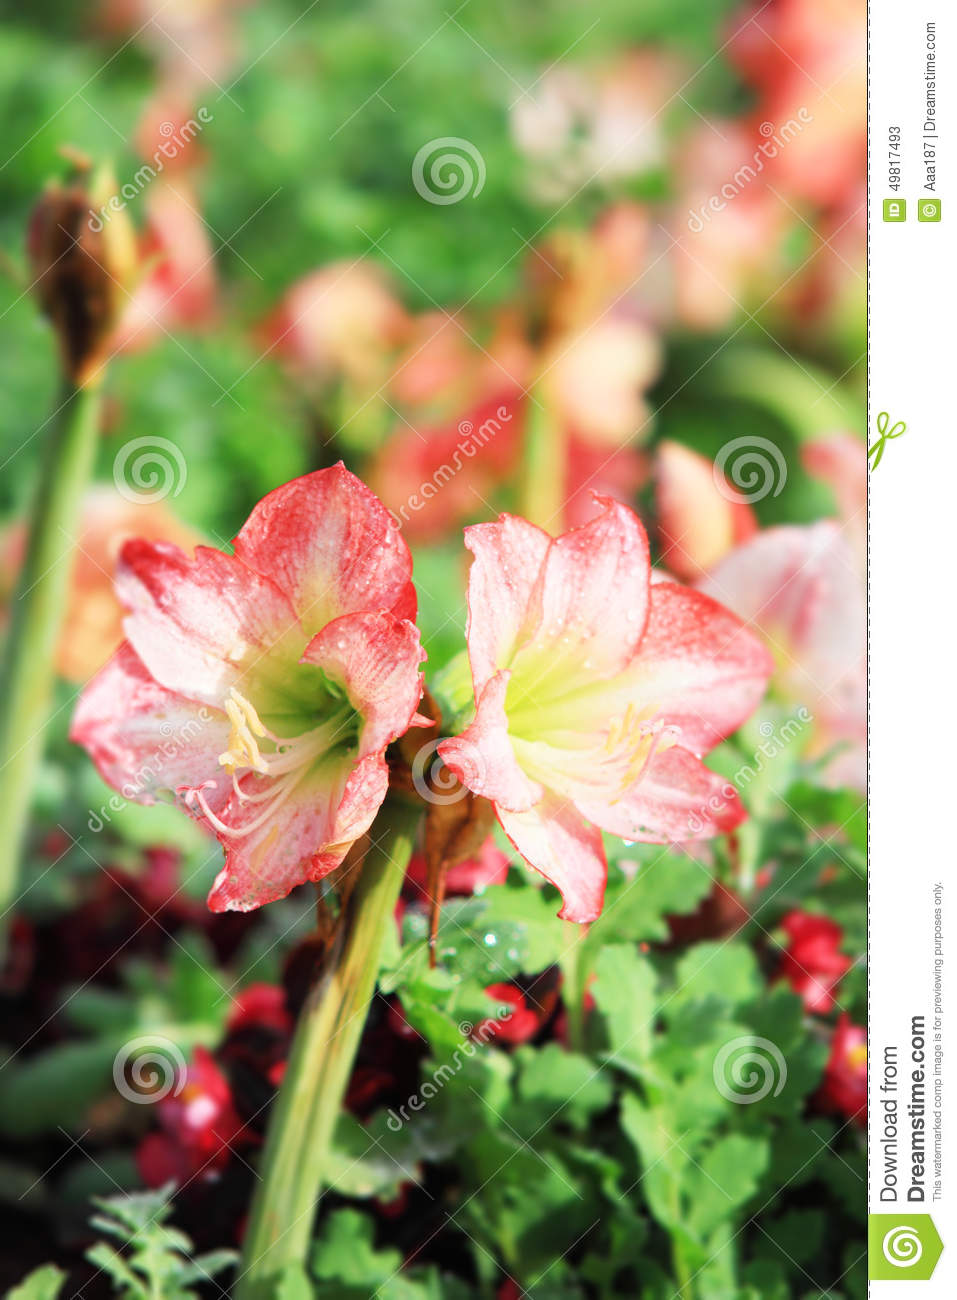 Natural Images In Flower